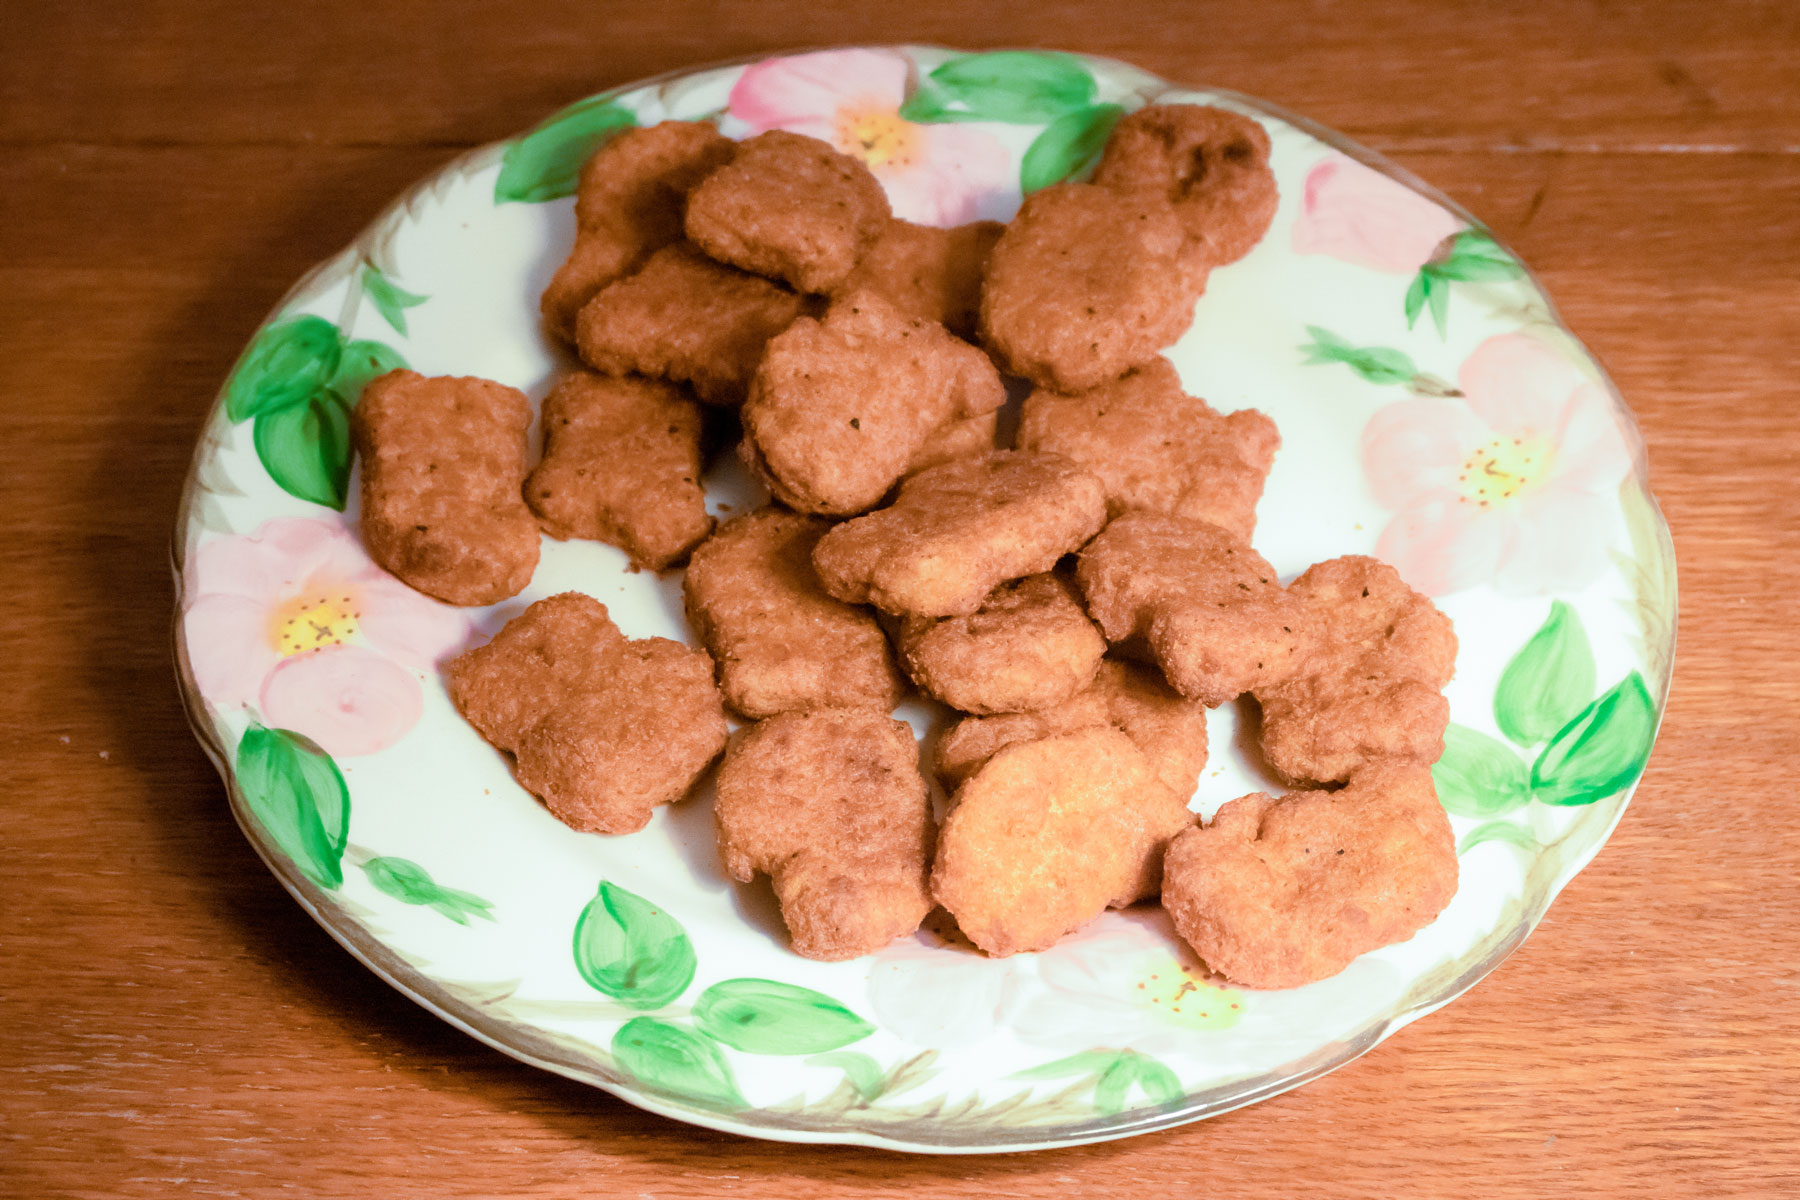 A delicate plate filled with Nuggs' plant-based nuggets.